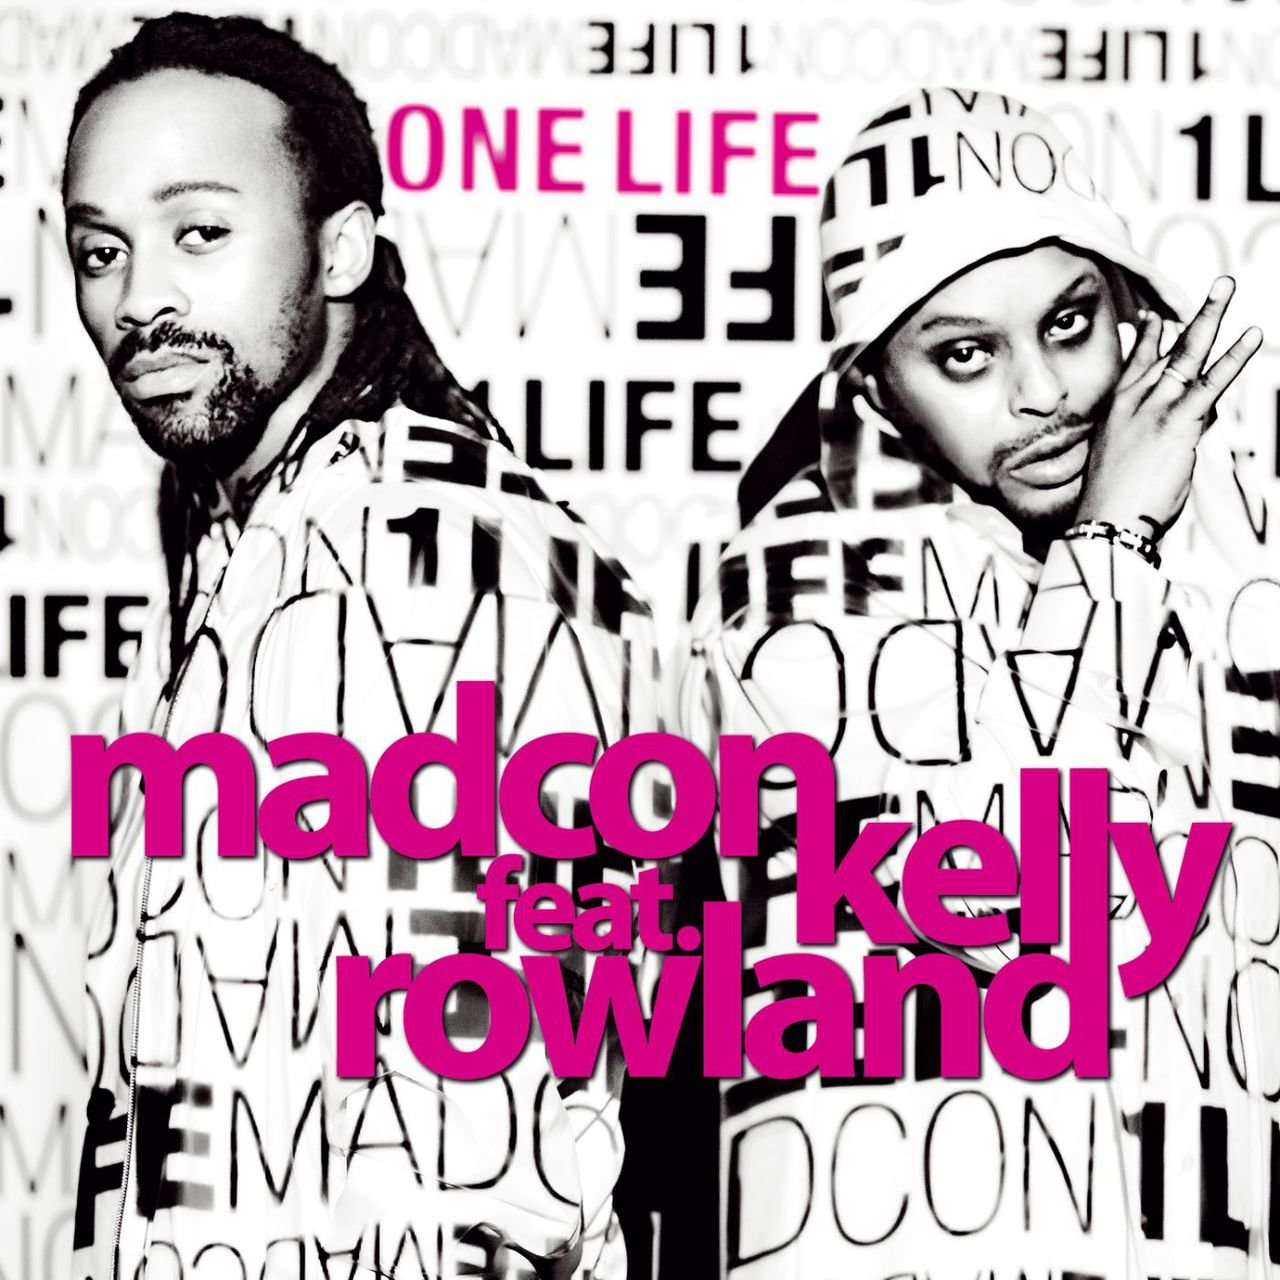 One life (feat. Kelly Rowland)